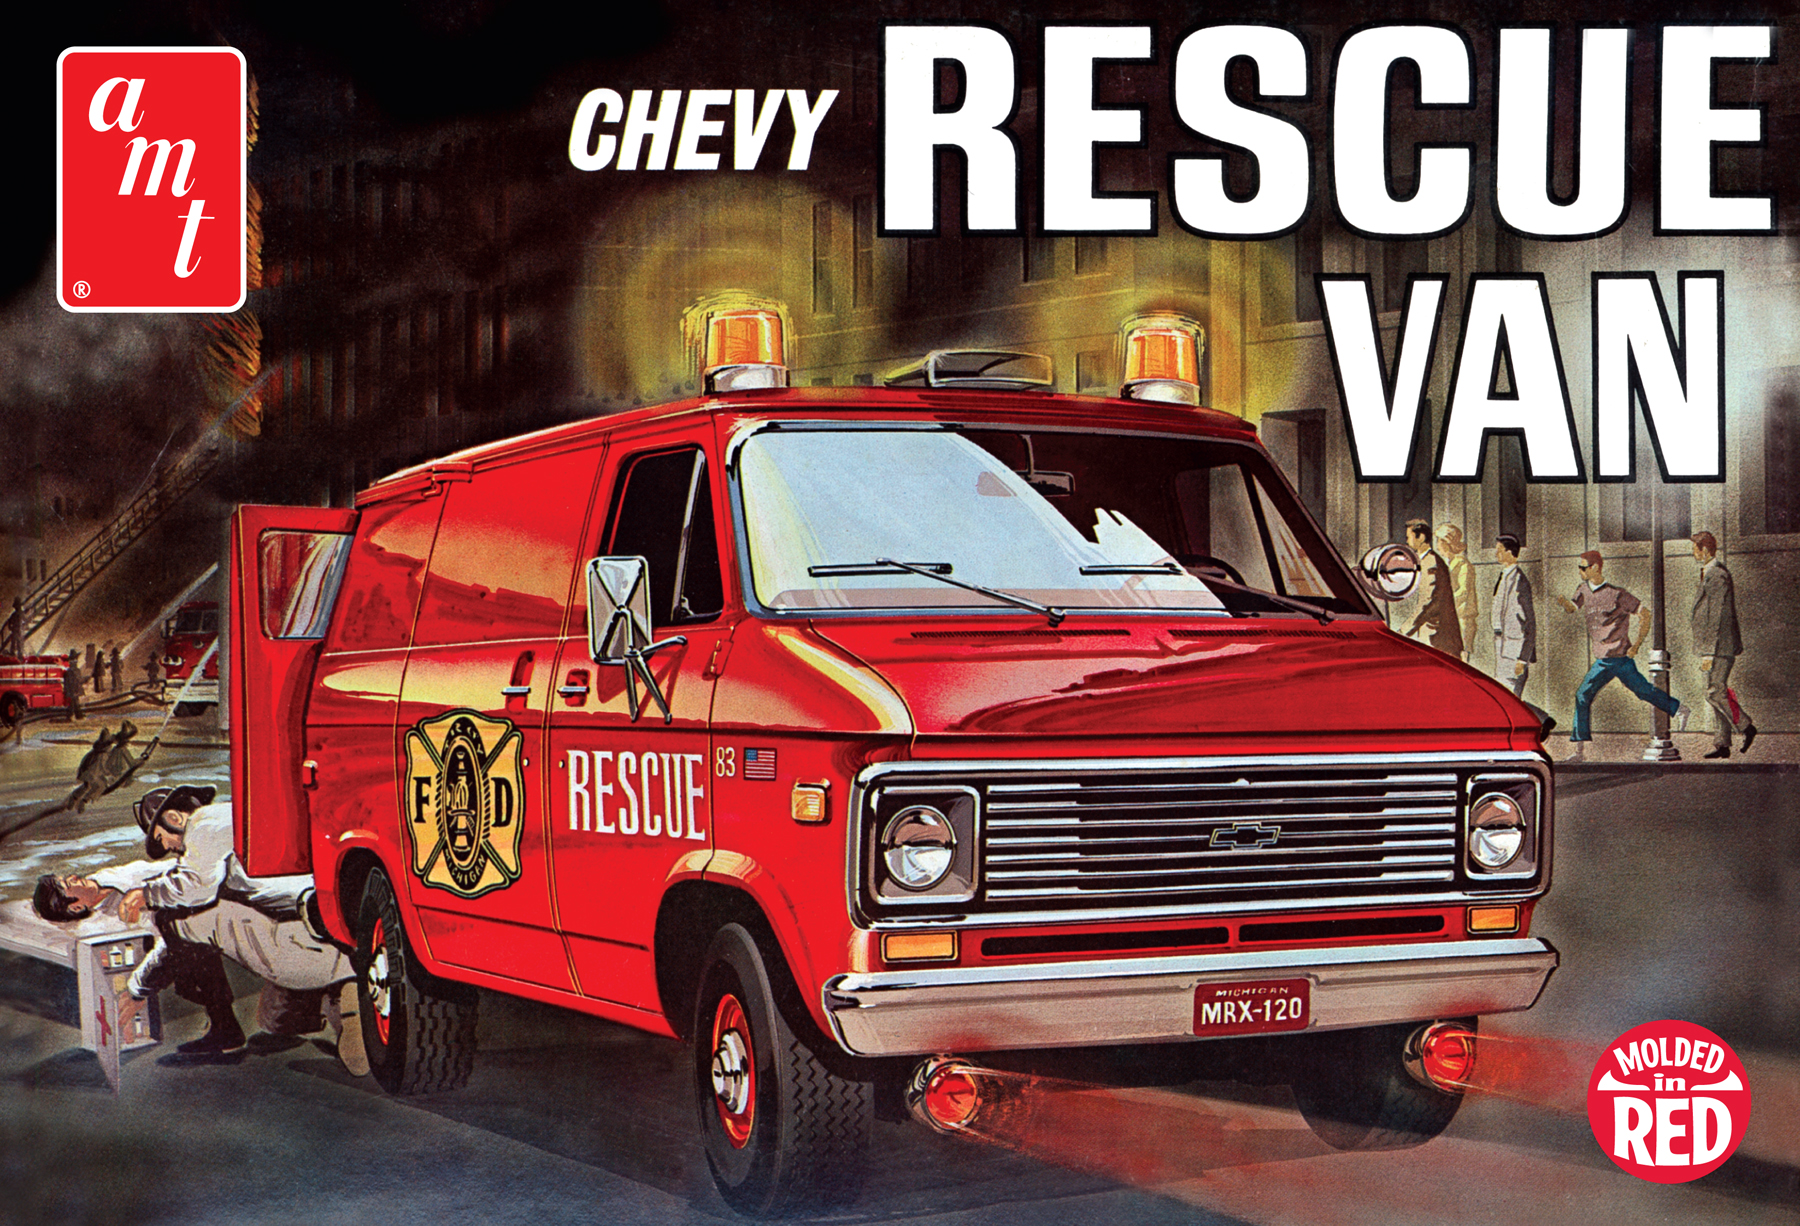 1975 Chevy Rescue Van [Red] (851)